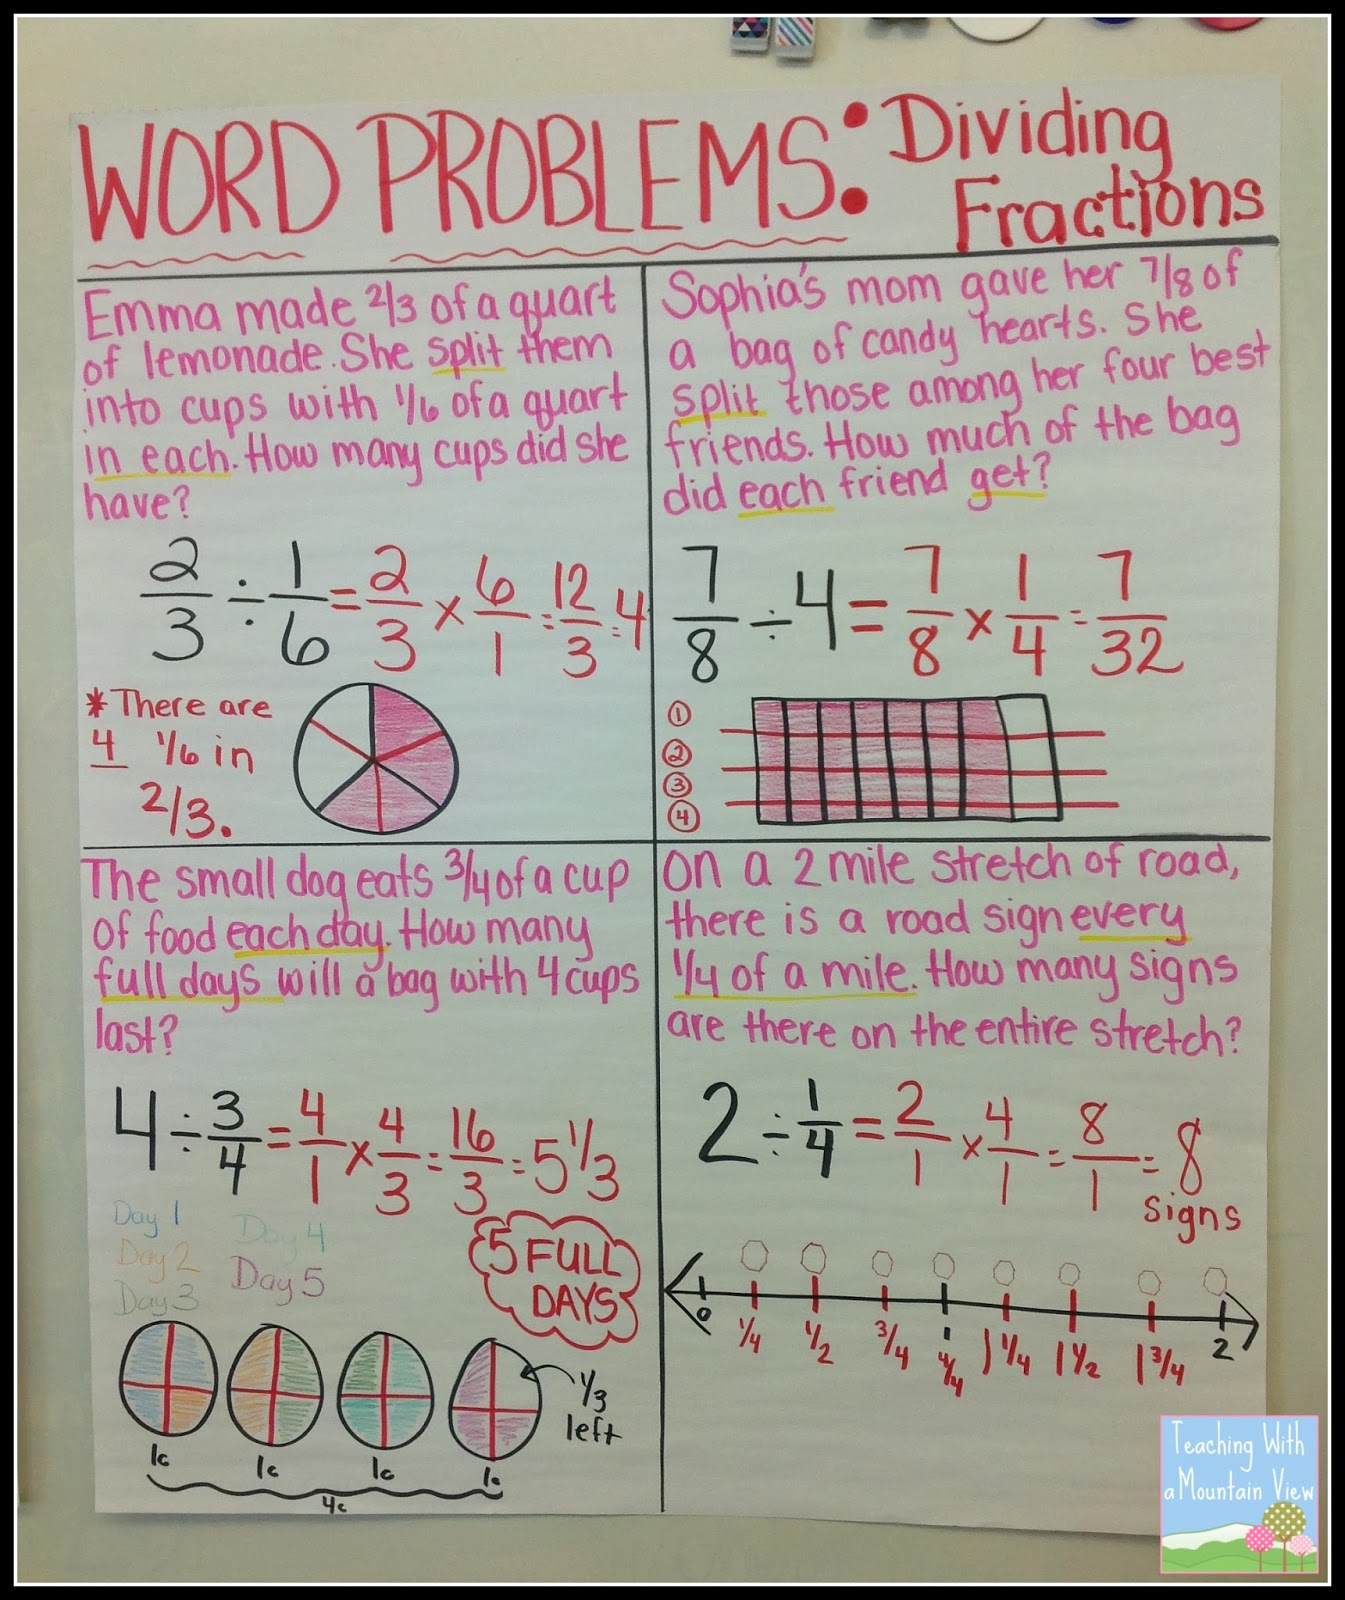 Worksheet Word Problems Dividing Fractions teaching with a mountain view making sense of multiplying we dissected these word problems underlined key phrases that they felt helped them to know what type problem were reading and